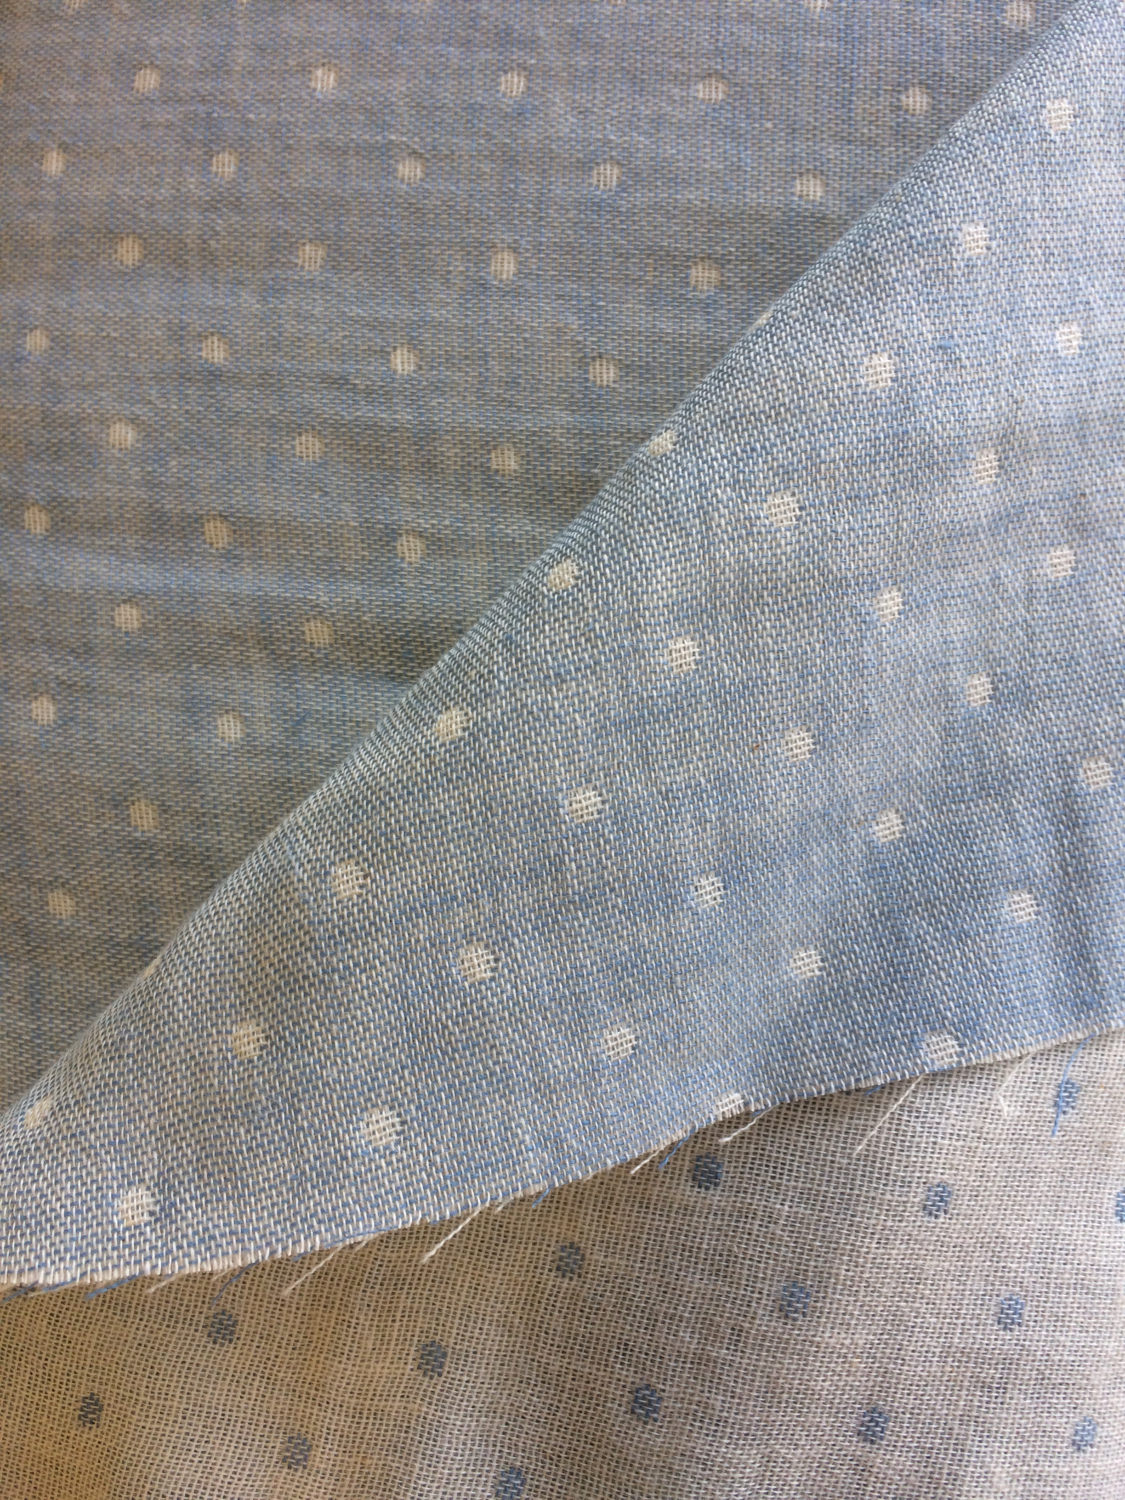 Reversible Dots in Light Blue (Double Gauze Fabric) for Kiyohara #KOF-04 BL